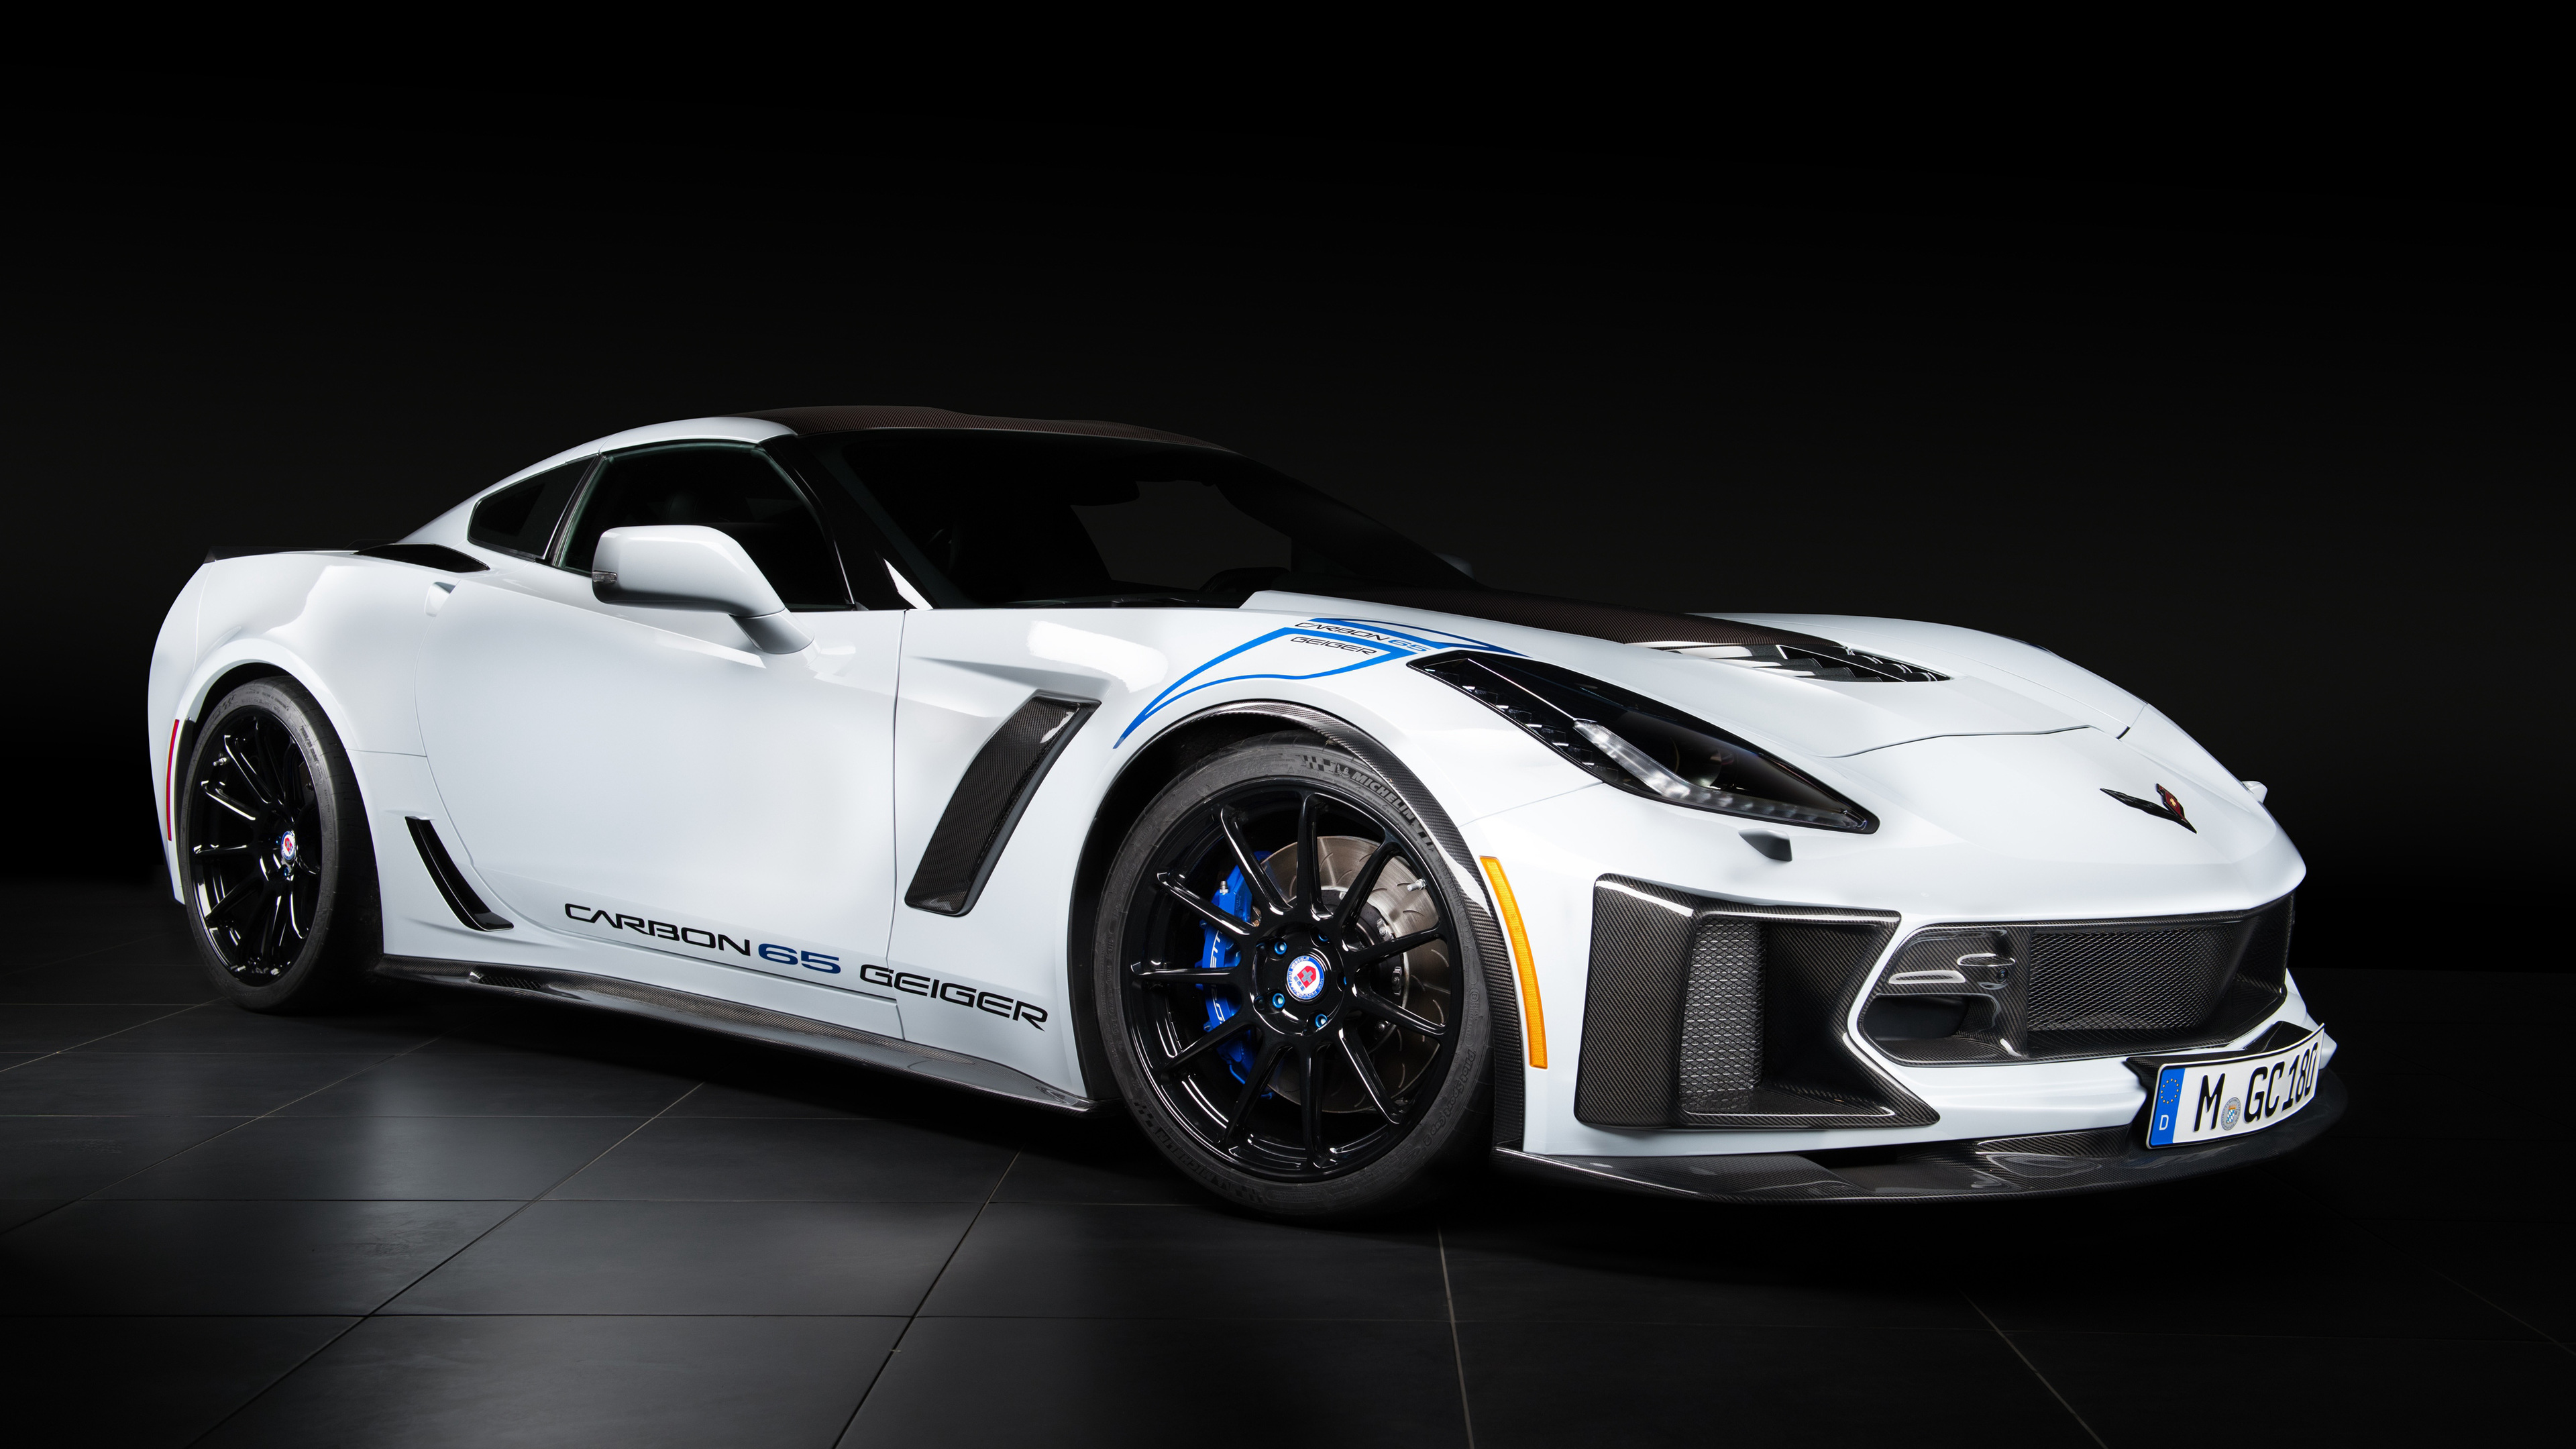 geiger chevrolet corvette z06 carbon 65 edition 2018 1539108995 - Geiger Chevrolet Corvette Z06 Carbon 65 Edition 2018 - hd-wallpapers, corvette wallpapers, chevrolet wallpapers, chevrolet corvette z06 wallpapers, cars wallpapers, 4k-wallpapers, 2018 cars wallpapers